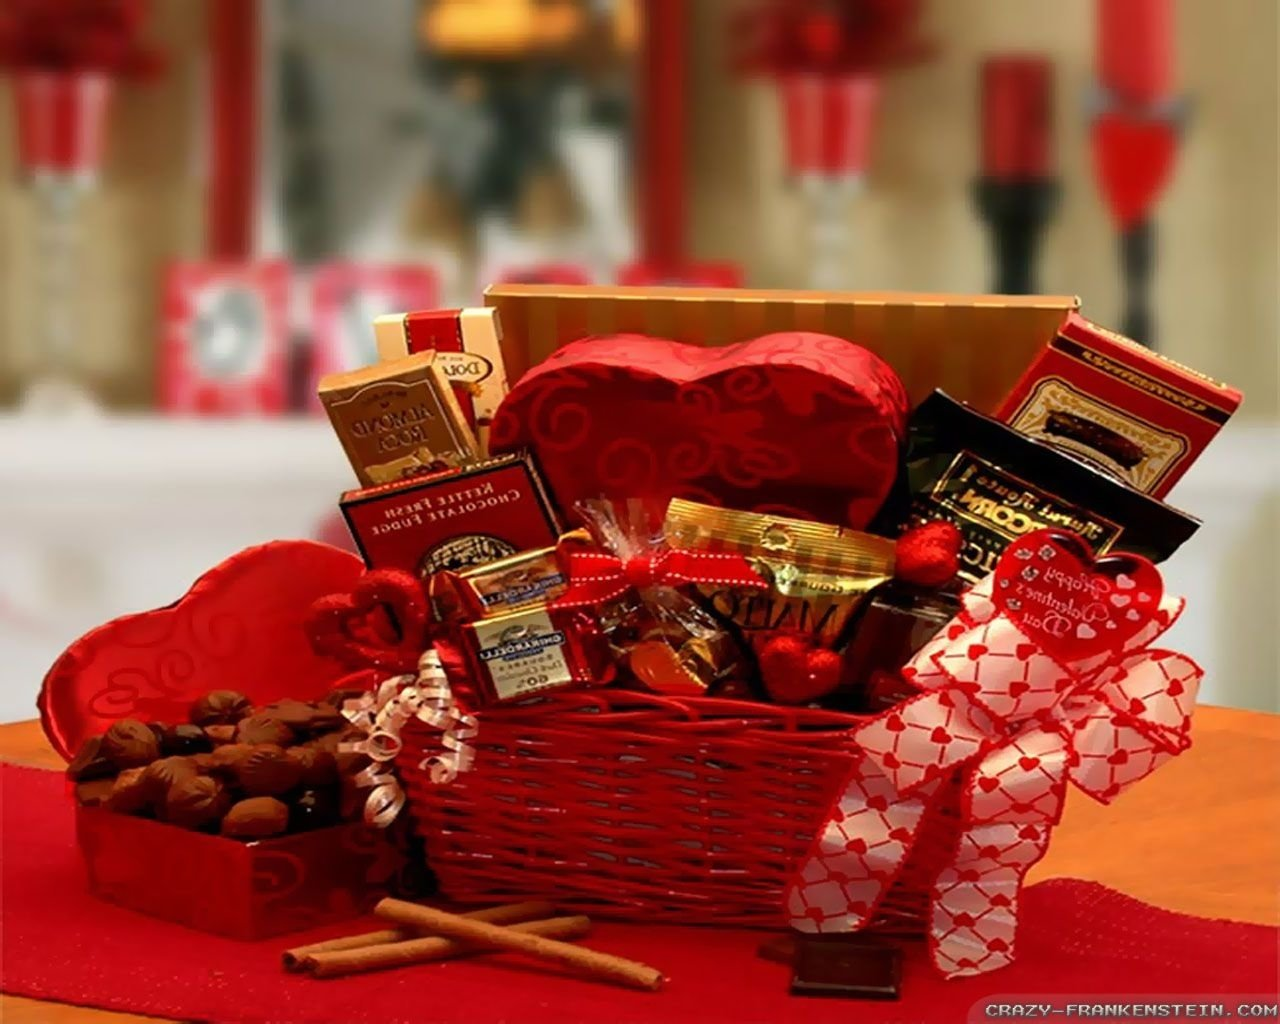 10 Attractive Romantic Gifts Ideas For Her valentinesdayideas valentines day gift ideas 2014 gift for 2021